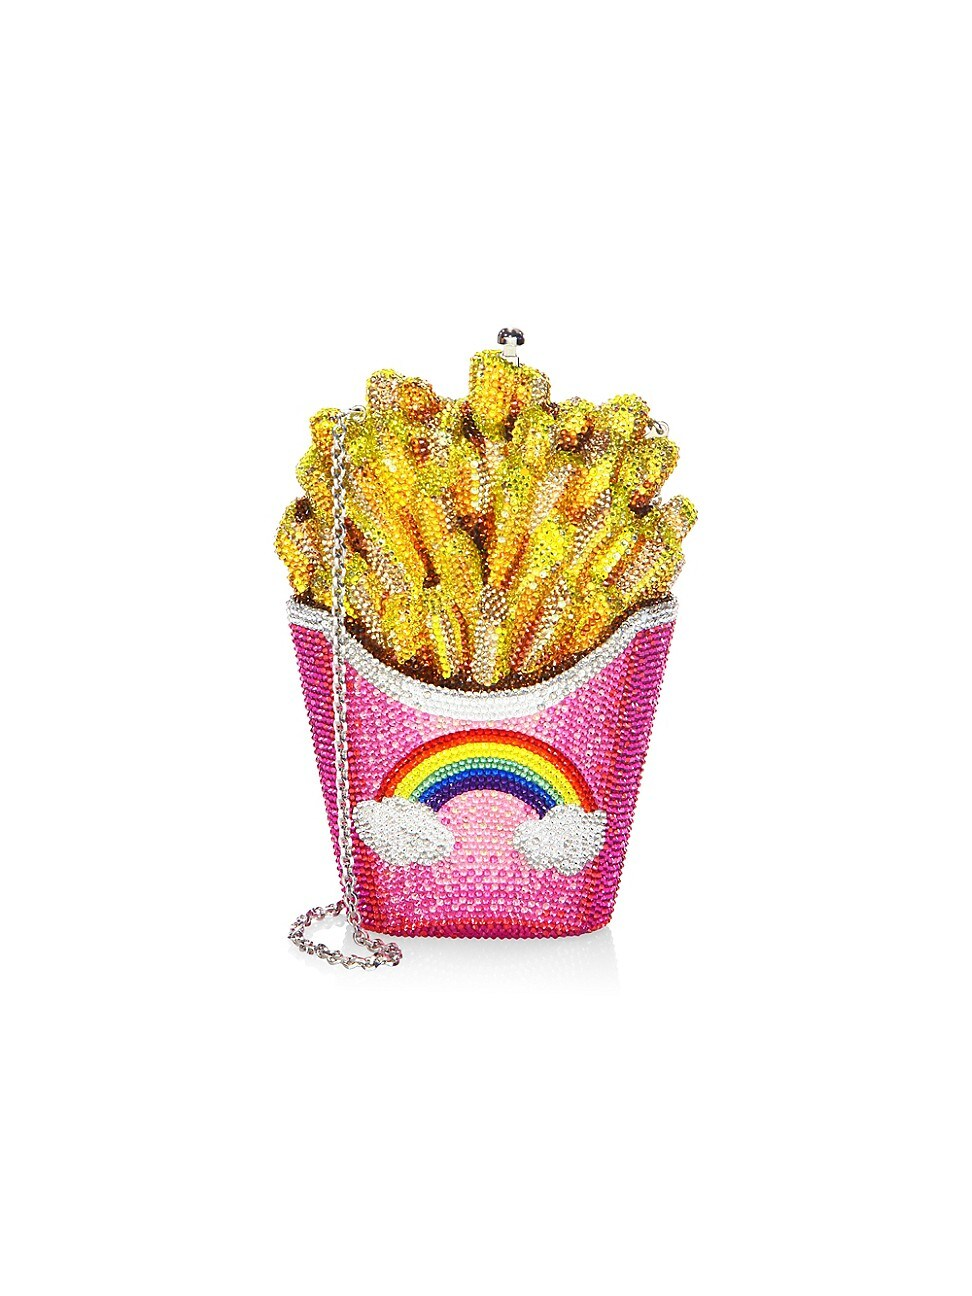 Judith Leiber WOMEN'S FRENCH FRIES CRYSTAL CLUTCH